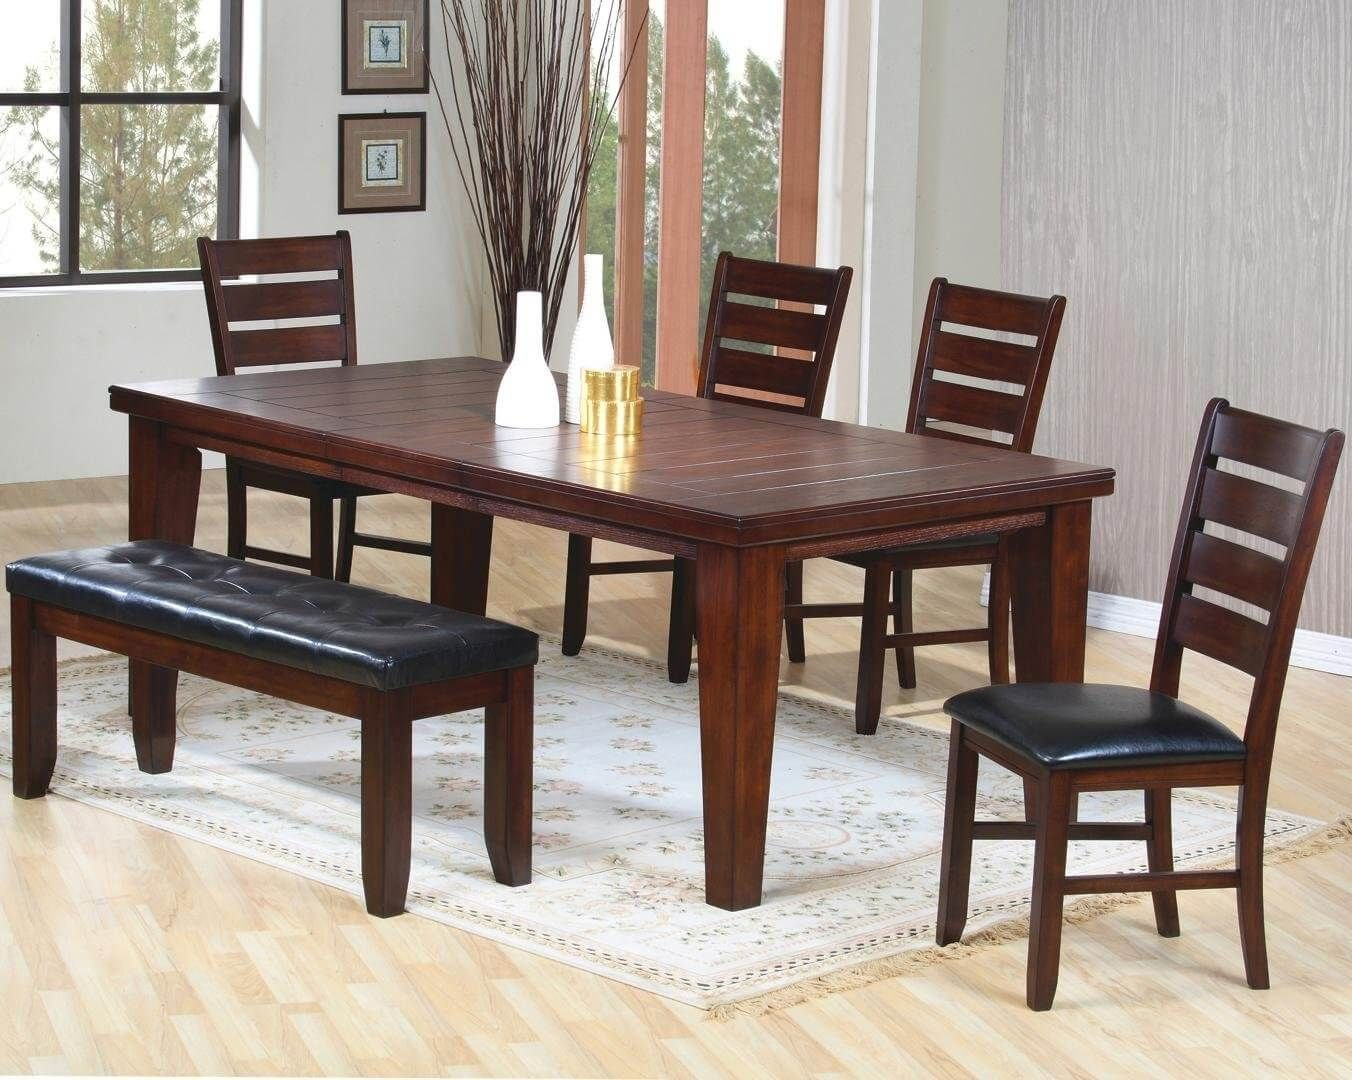 Dining Room Tables With Bench